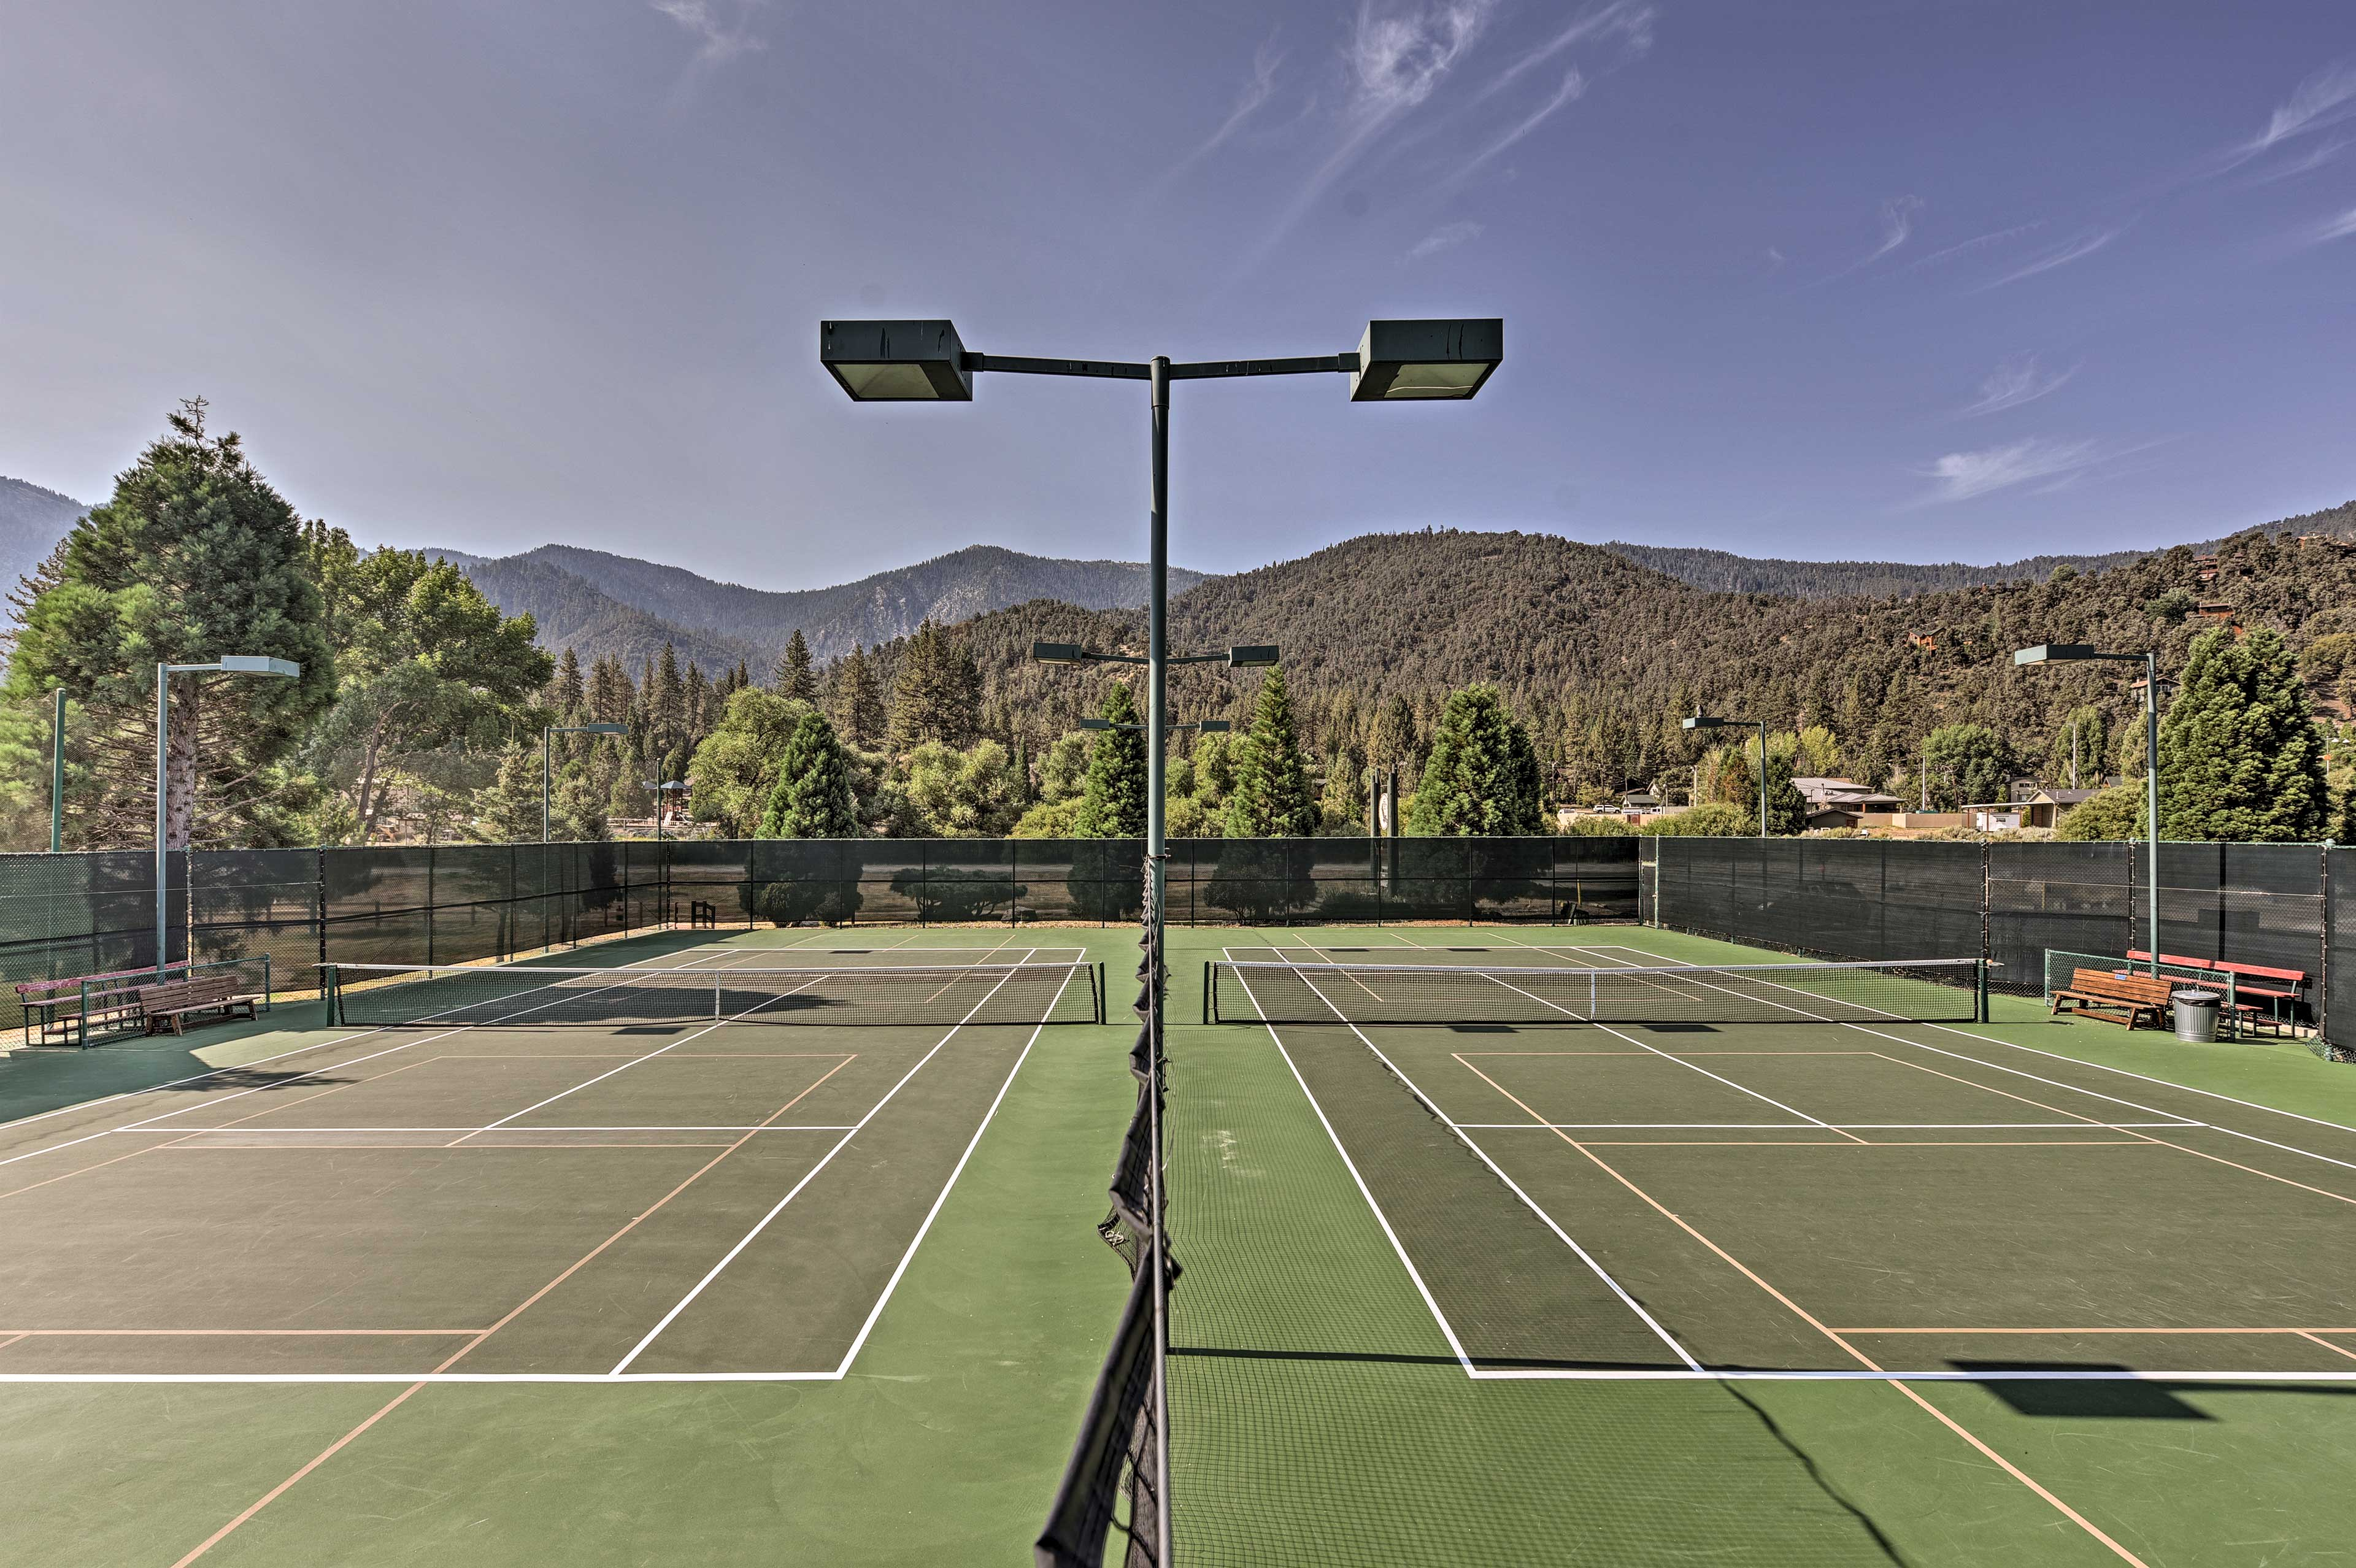 Don't forget to pack your tennis rackets!